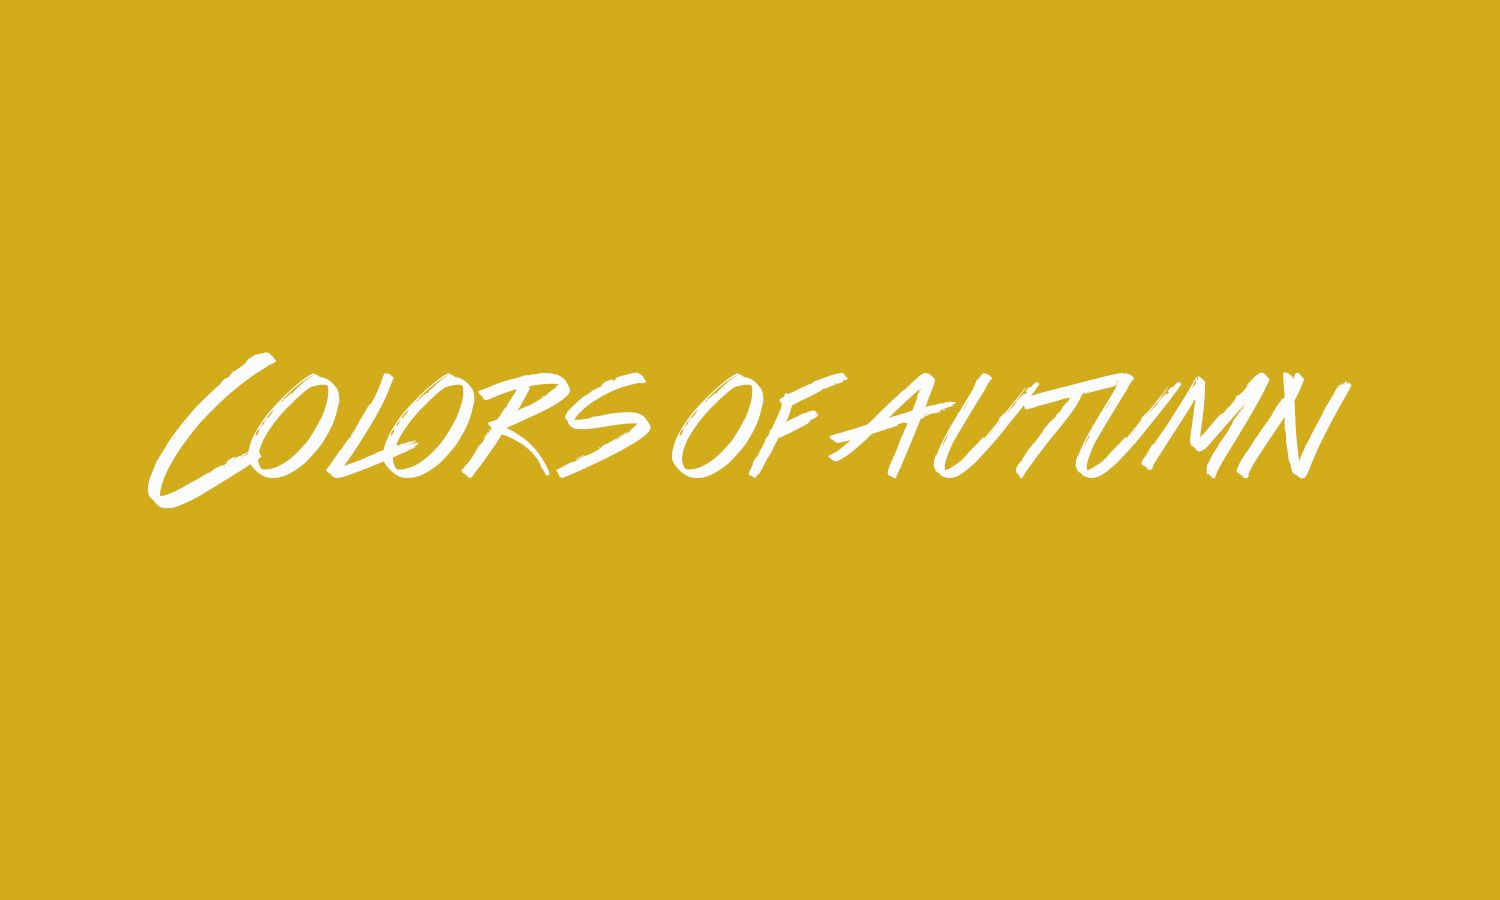 The Colors of Autumn font